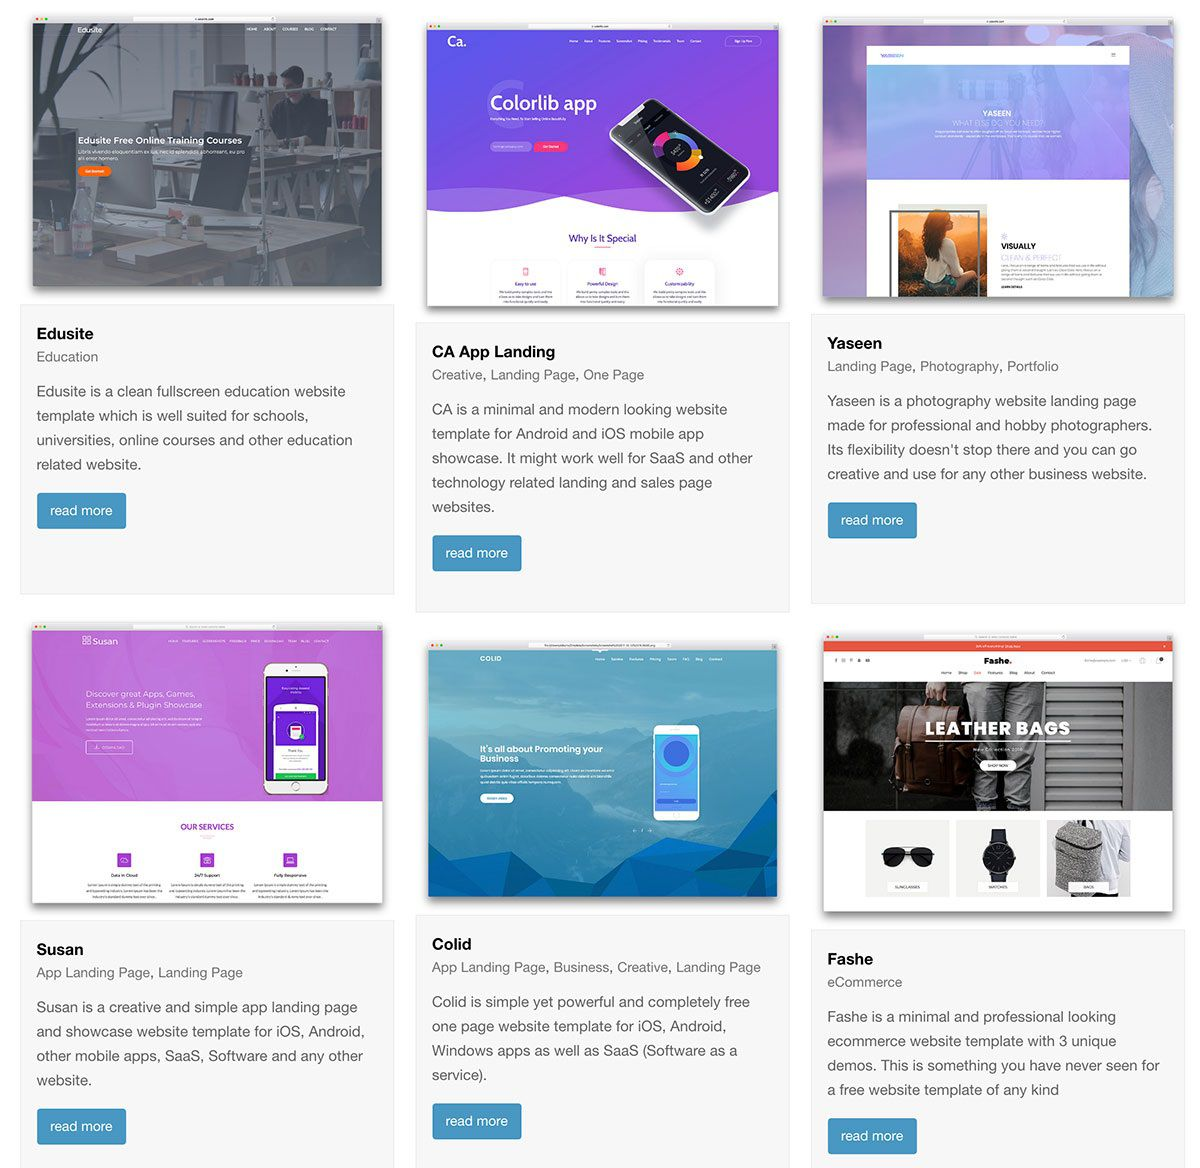 005 Top Single Page Web Template Example  Templates One Website Free Download Html5 BootstrapFull